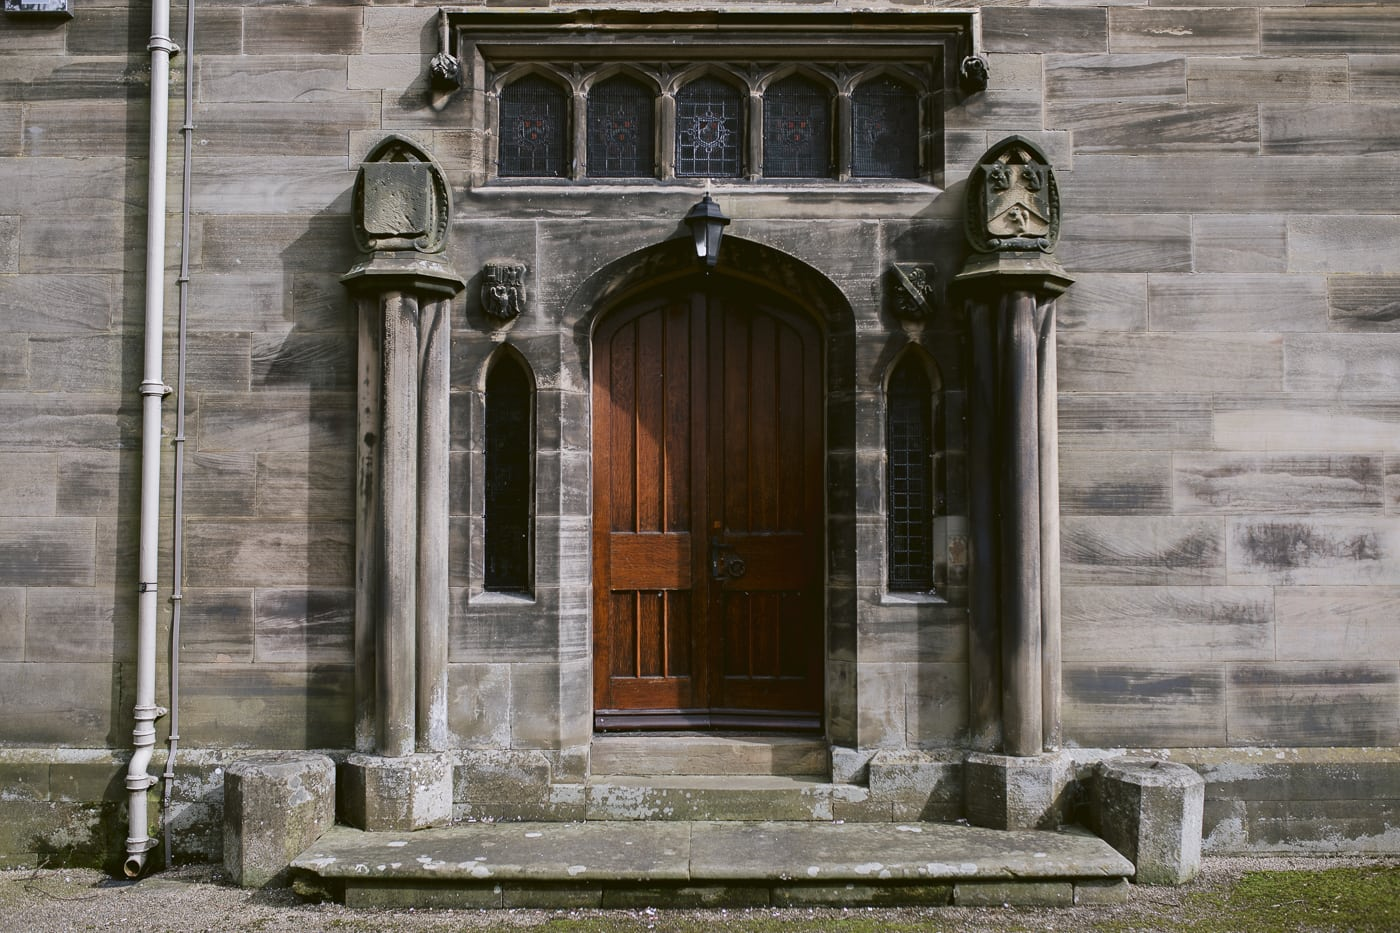 Front Doors of Carlisle Registry office